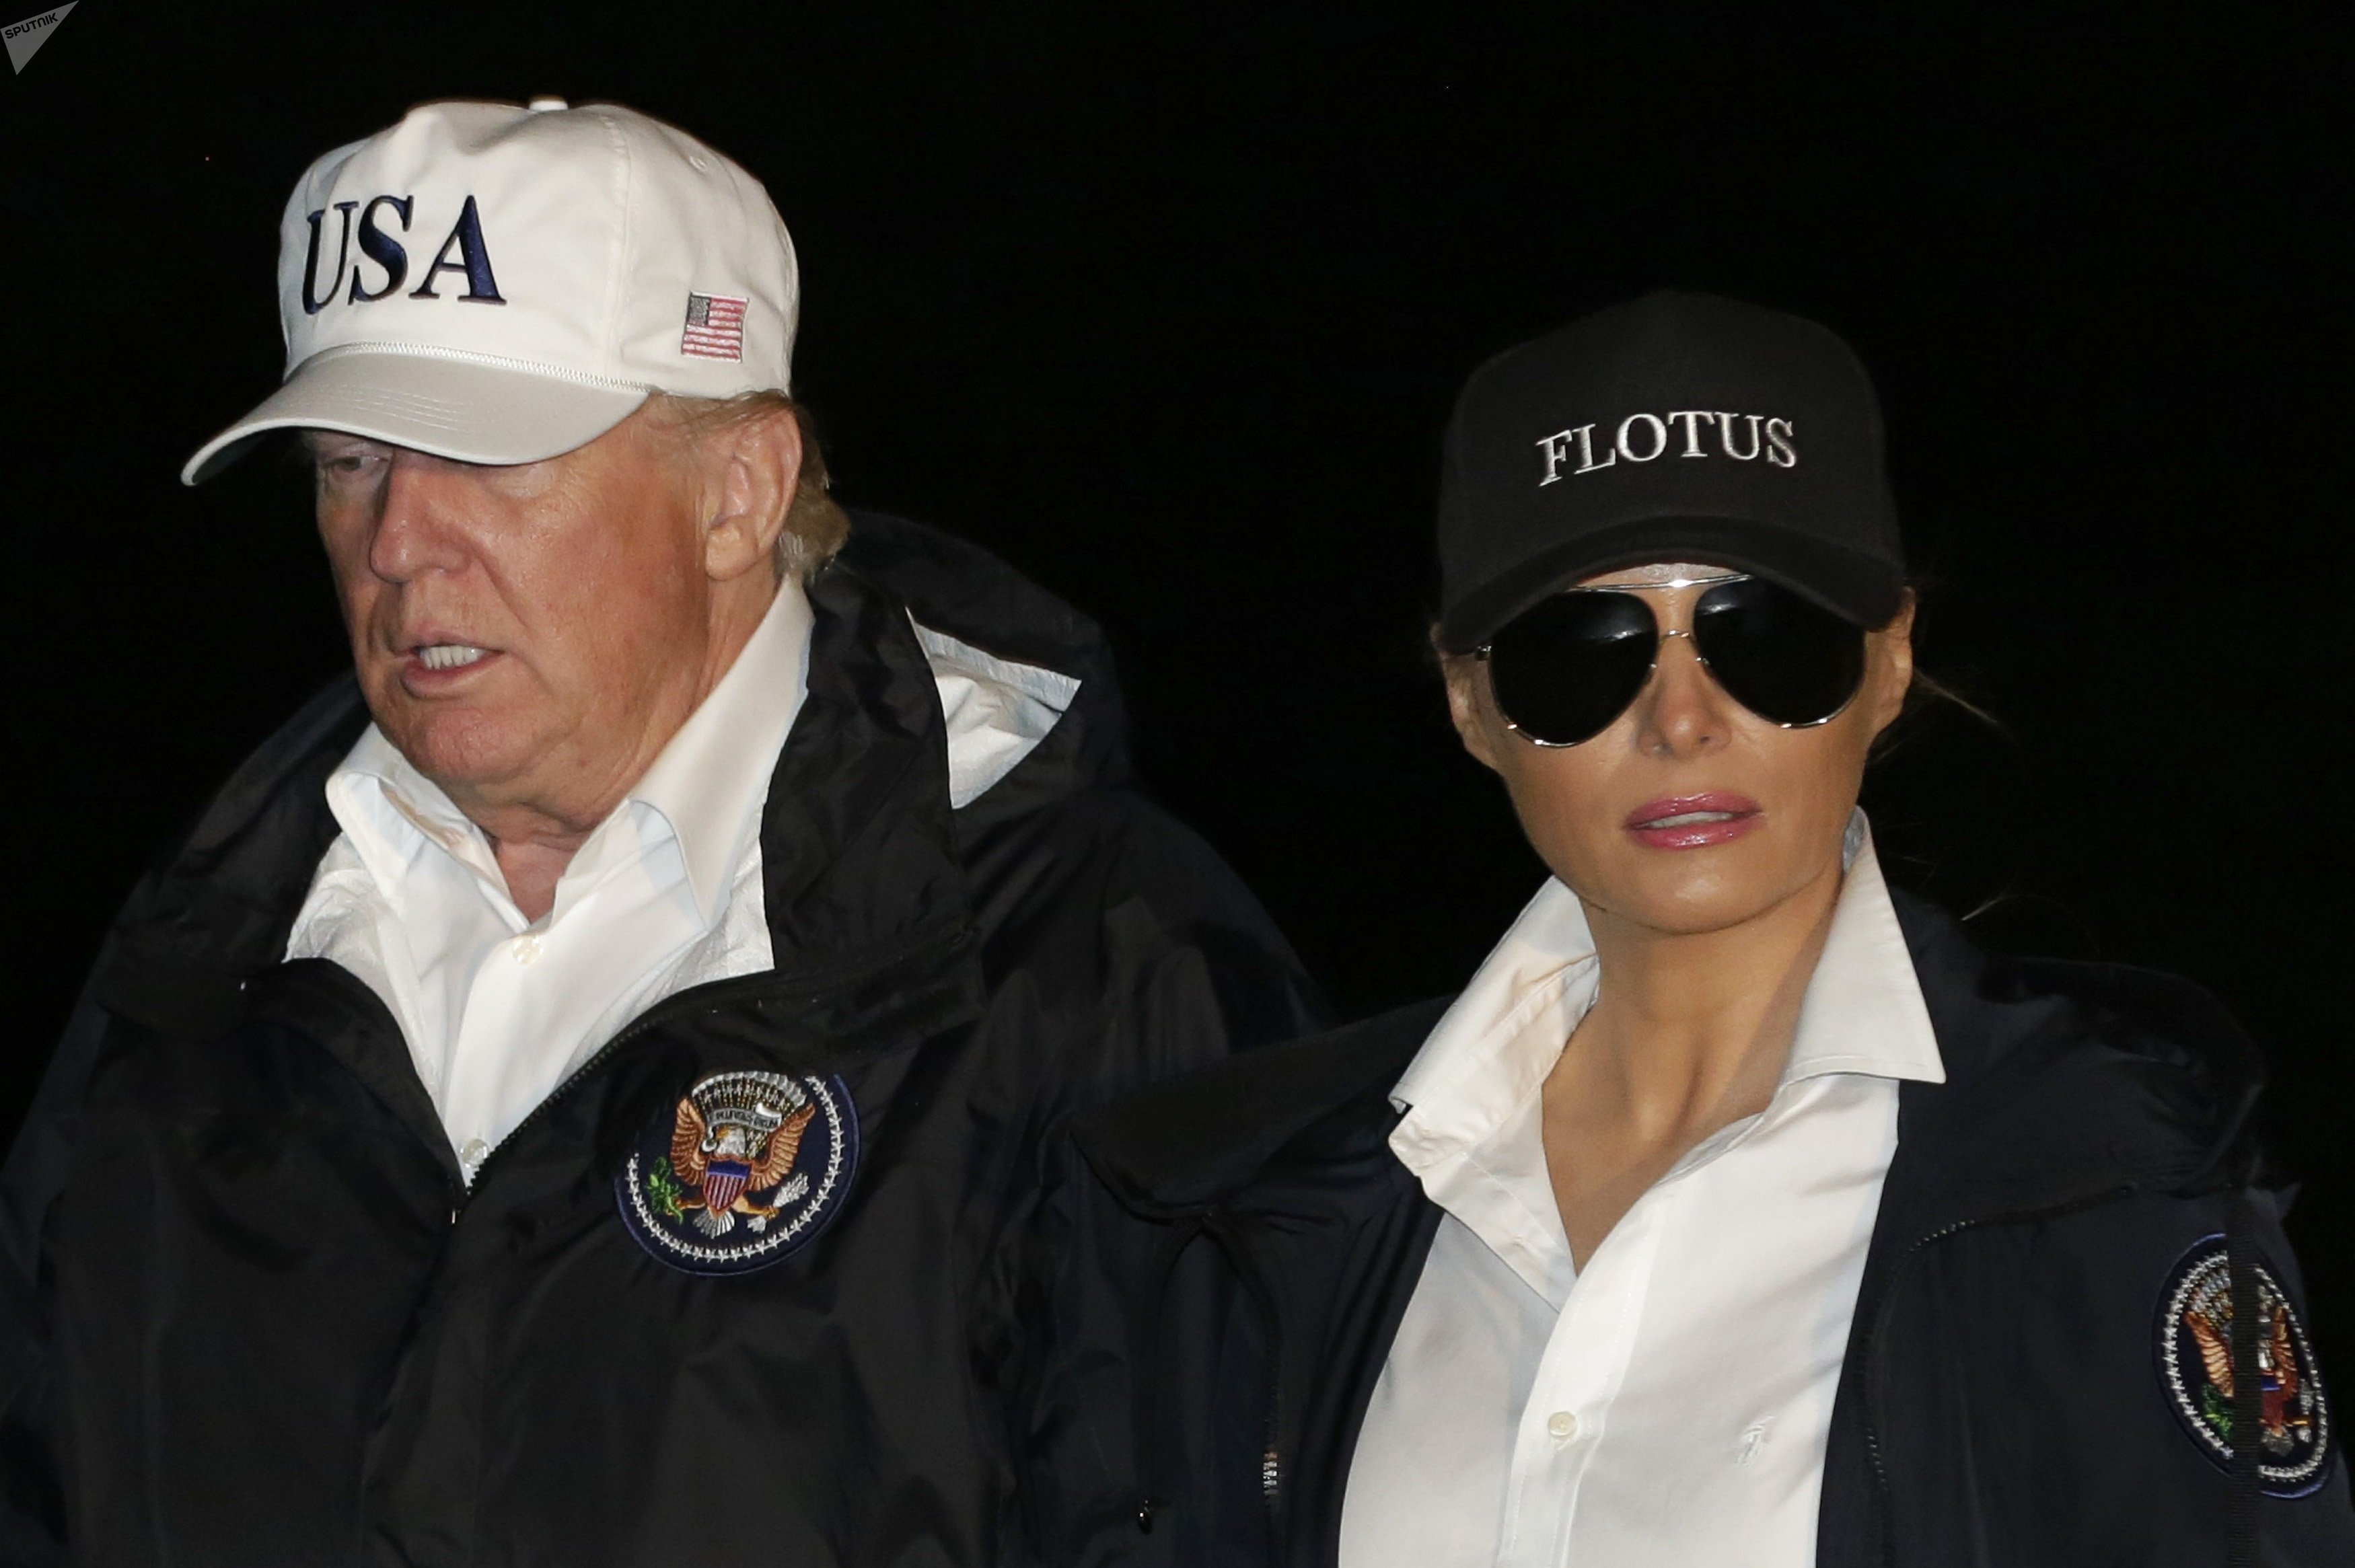 Donald et Melania Trump rentrent de Houston au Texas, le 29 août 2017